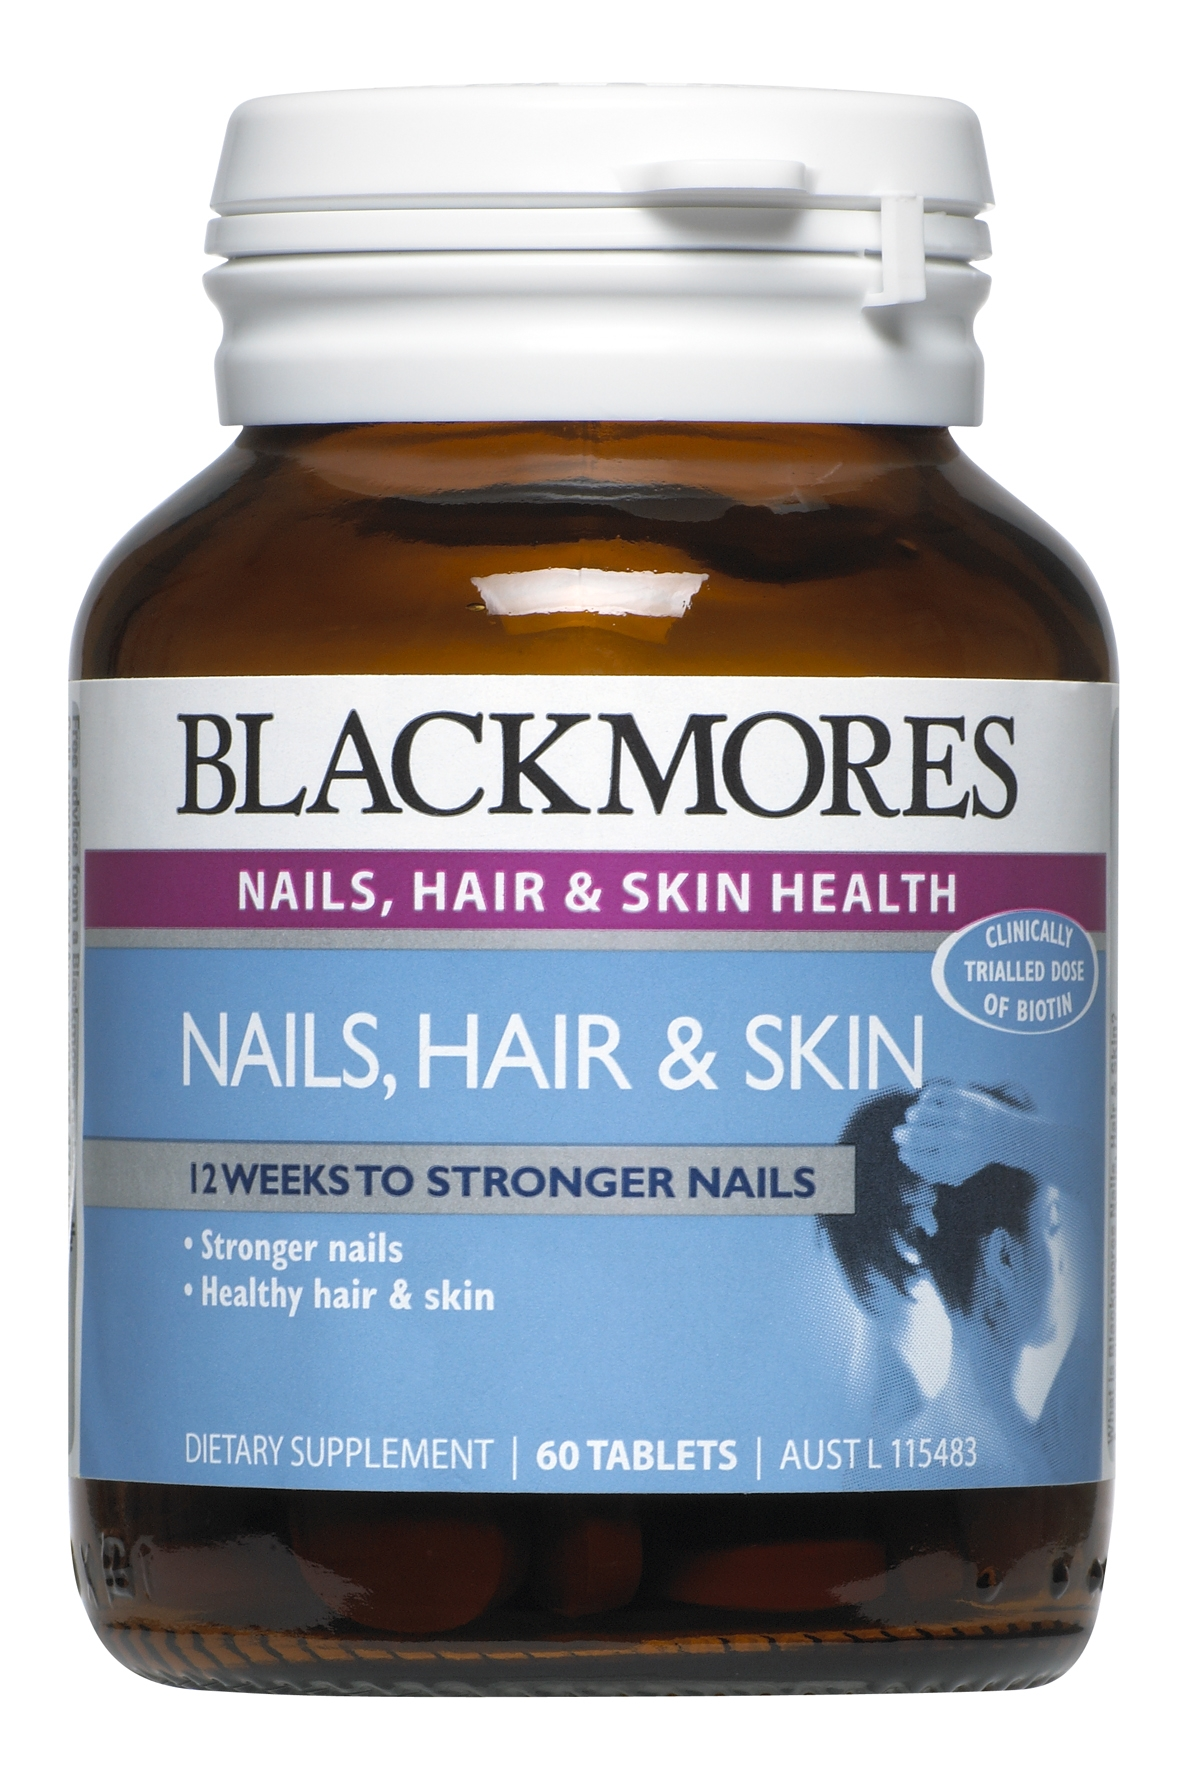 Buy Blackmores Nails Hair Amp Skin Online 60 Tabs